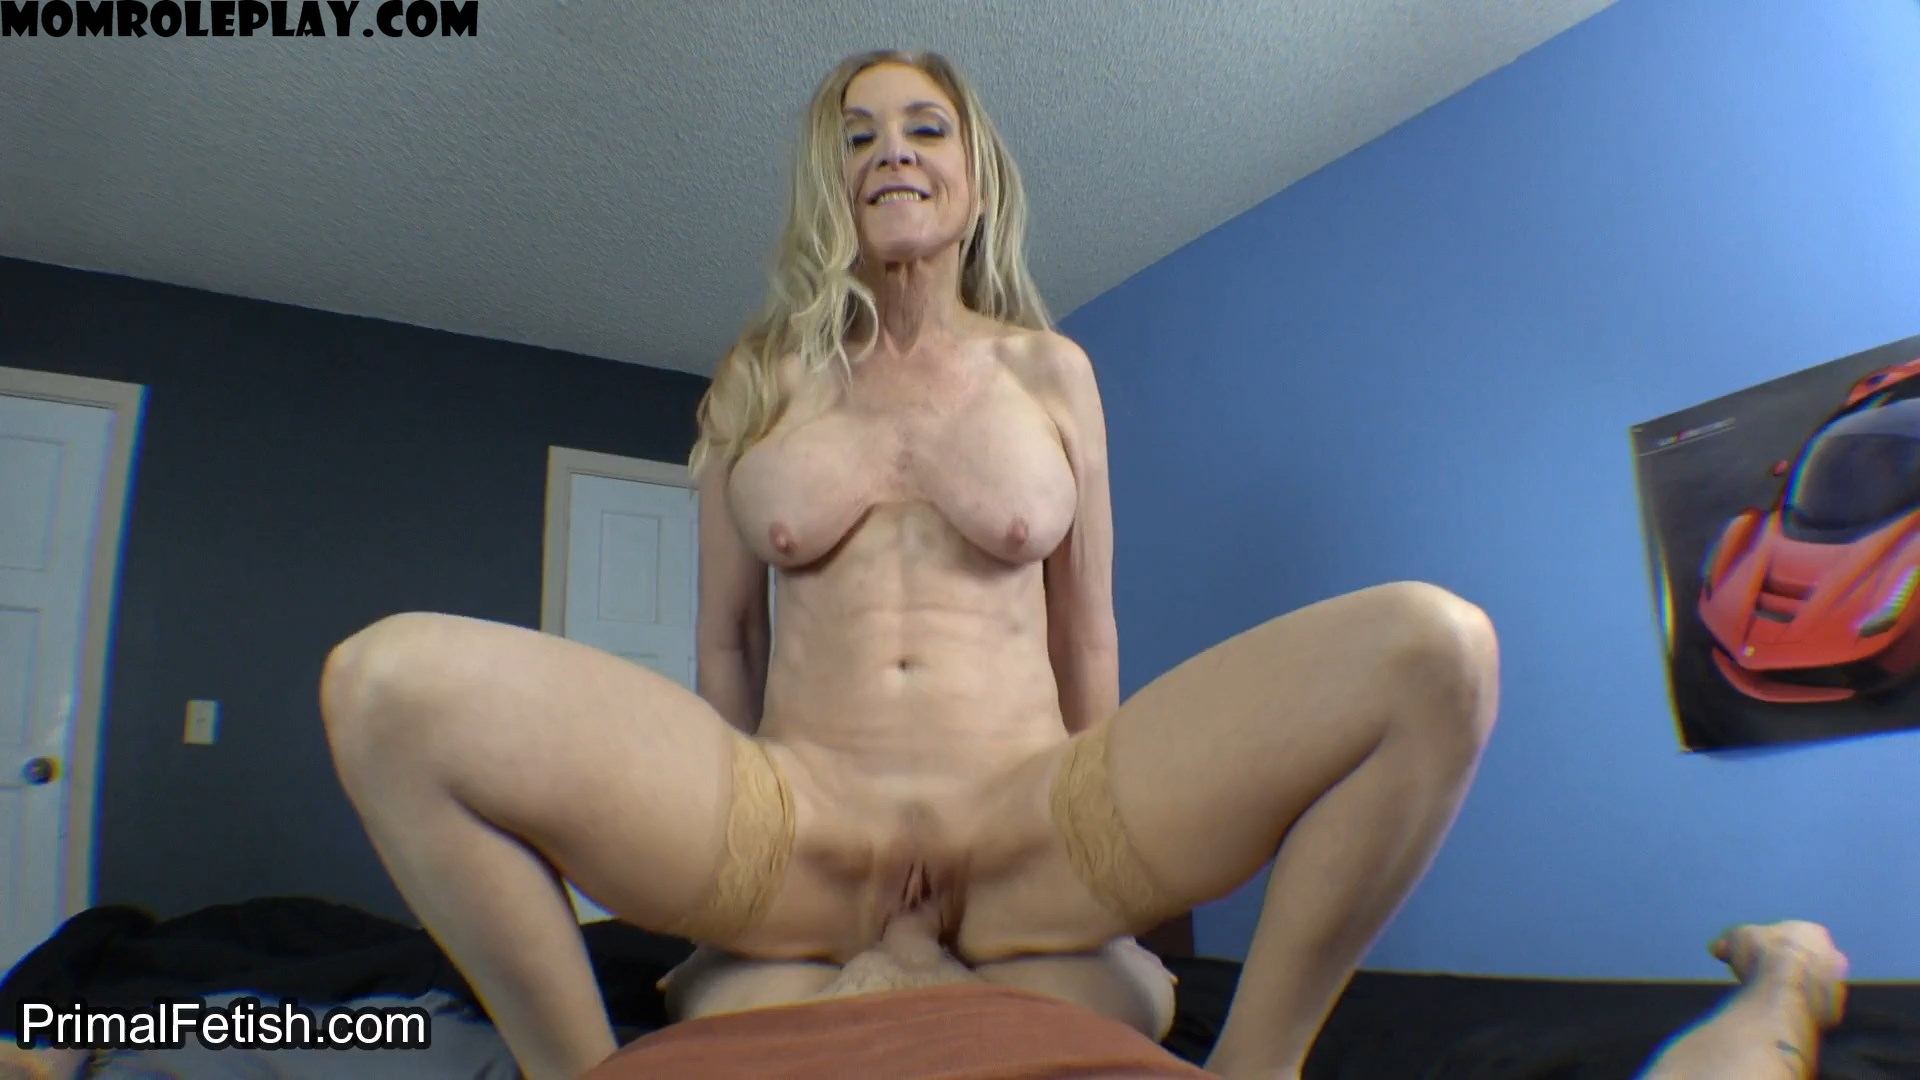 Primal's Taboo Sex - Nina Hartley - Start taking over for Dad POV 1080p